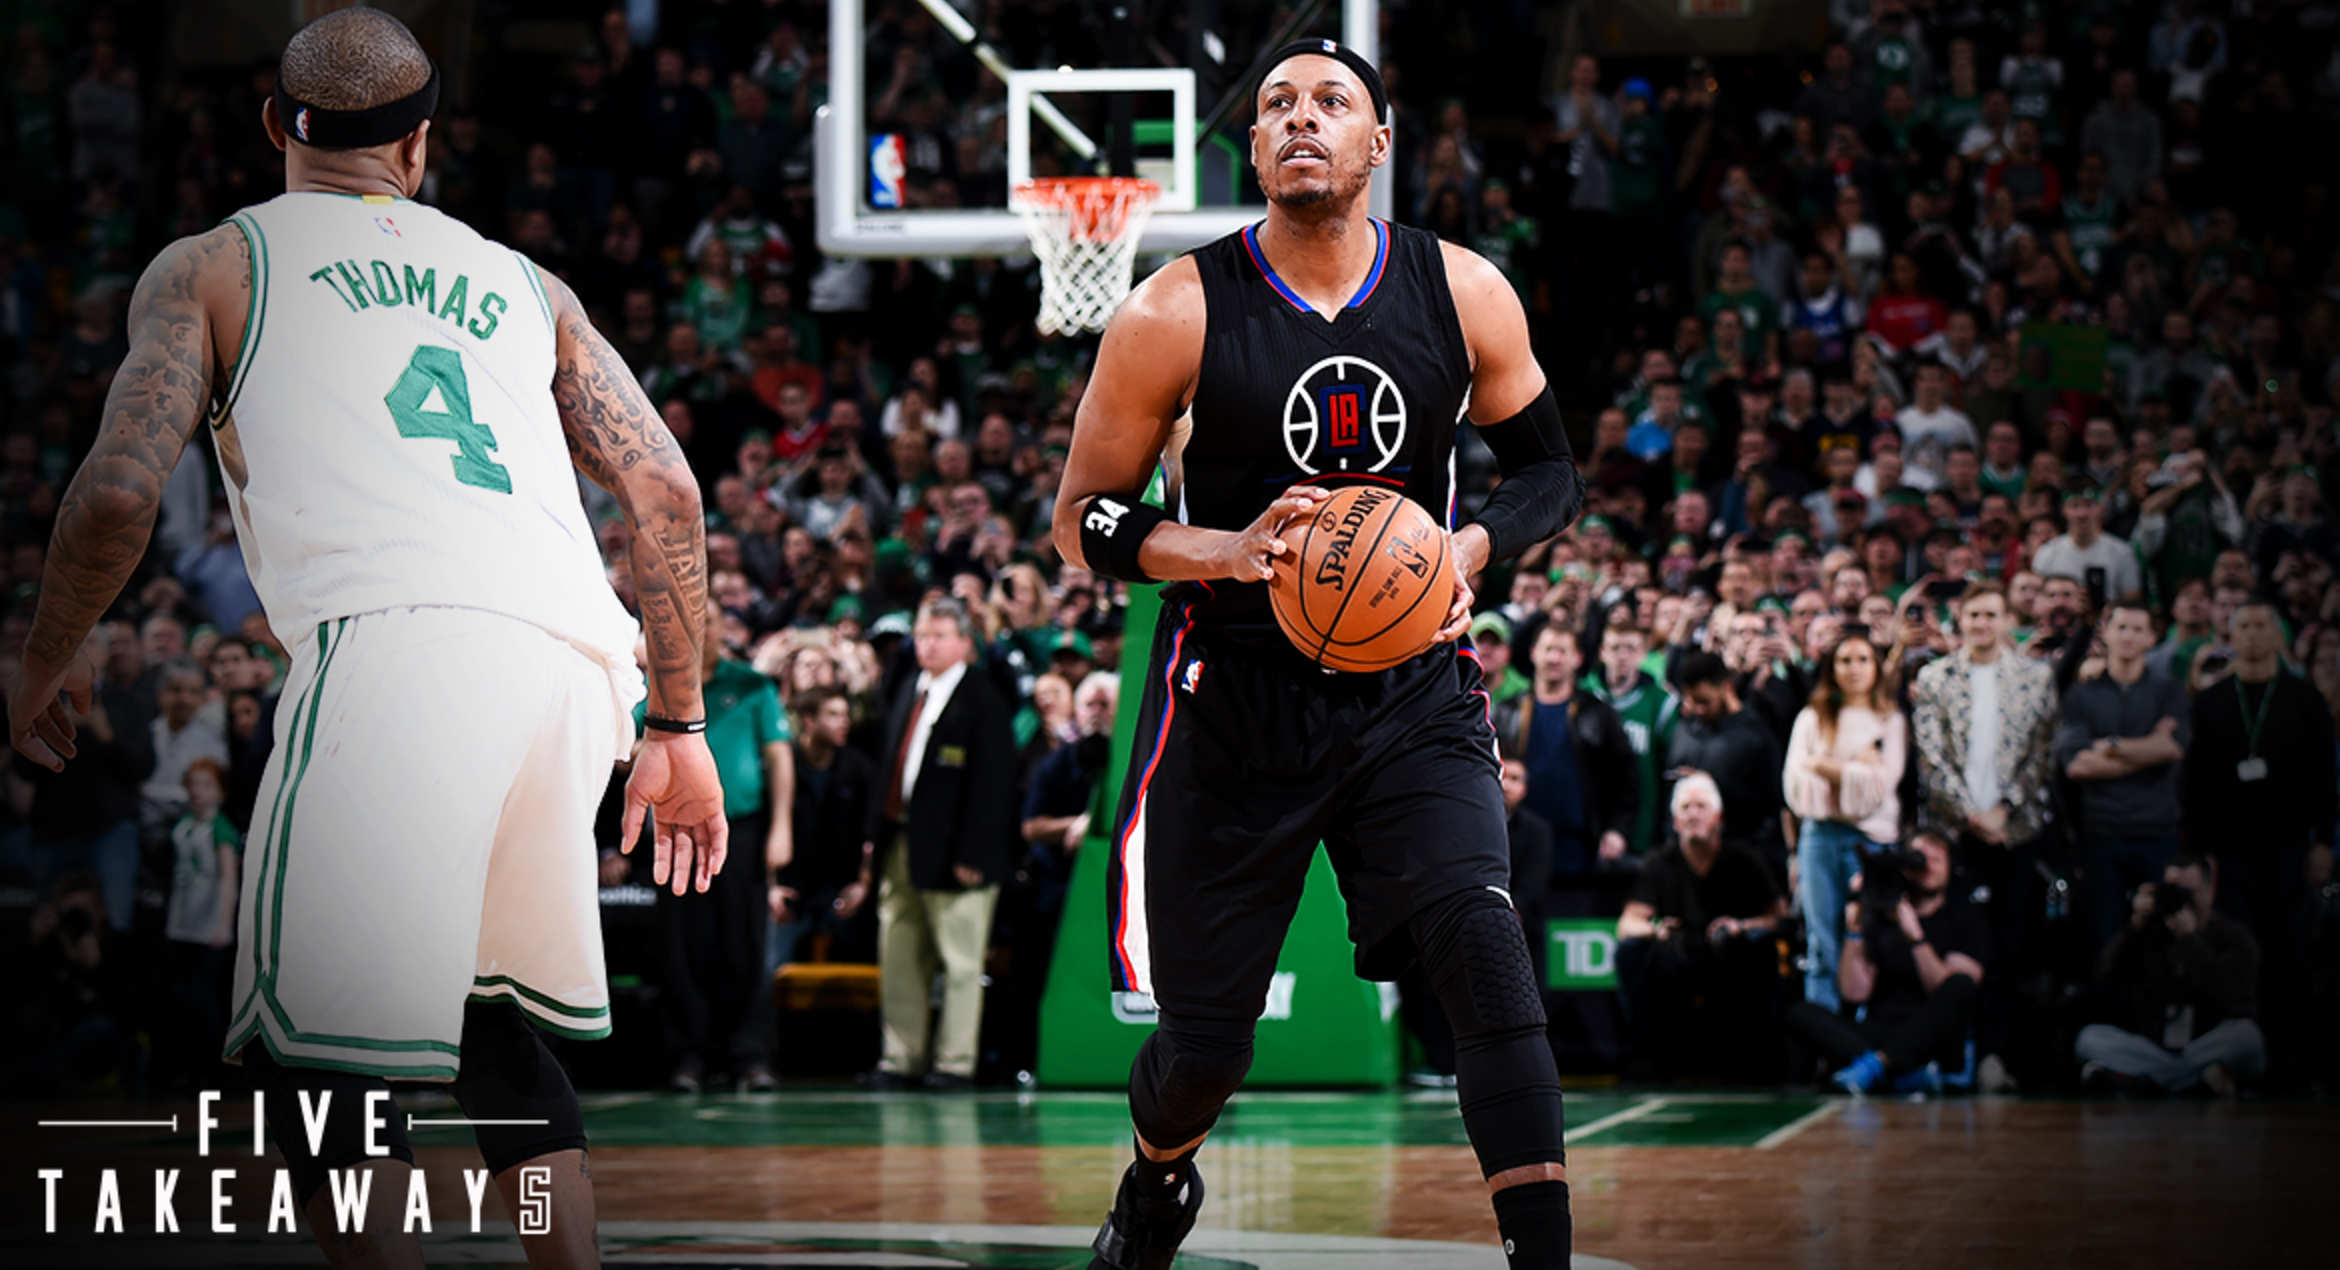 Five Takeaways: Celtics Live Behind The Arc In Clippers Loss